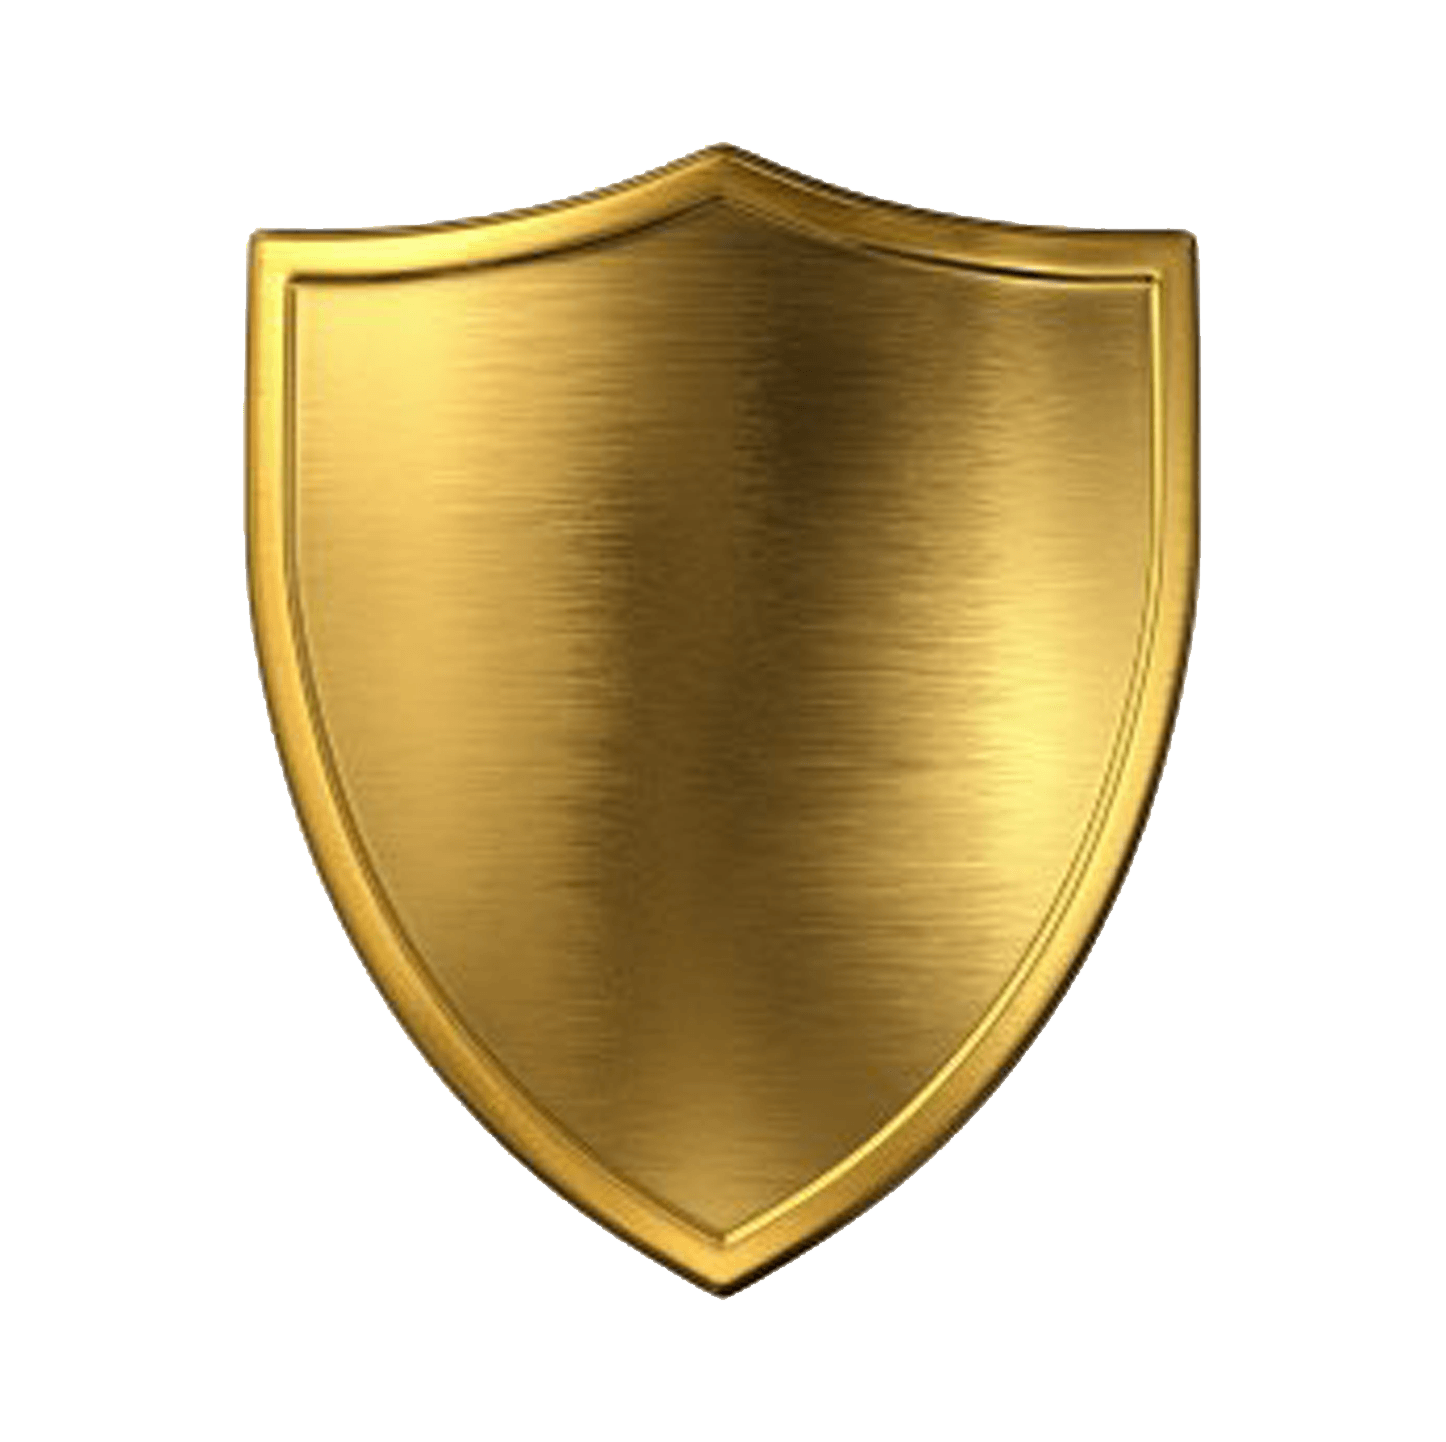 Gold Shield Png Image Picture Download PNG Image